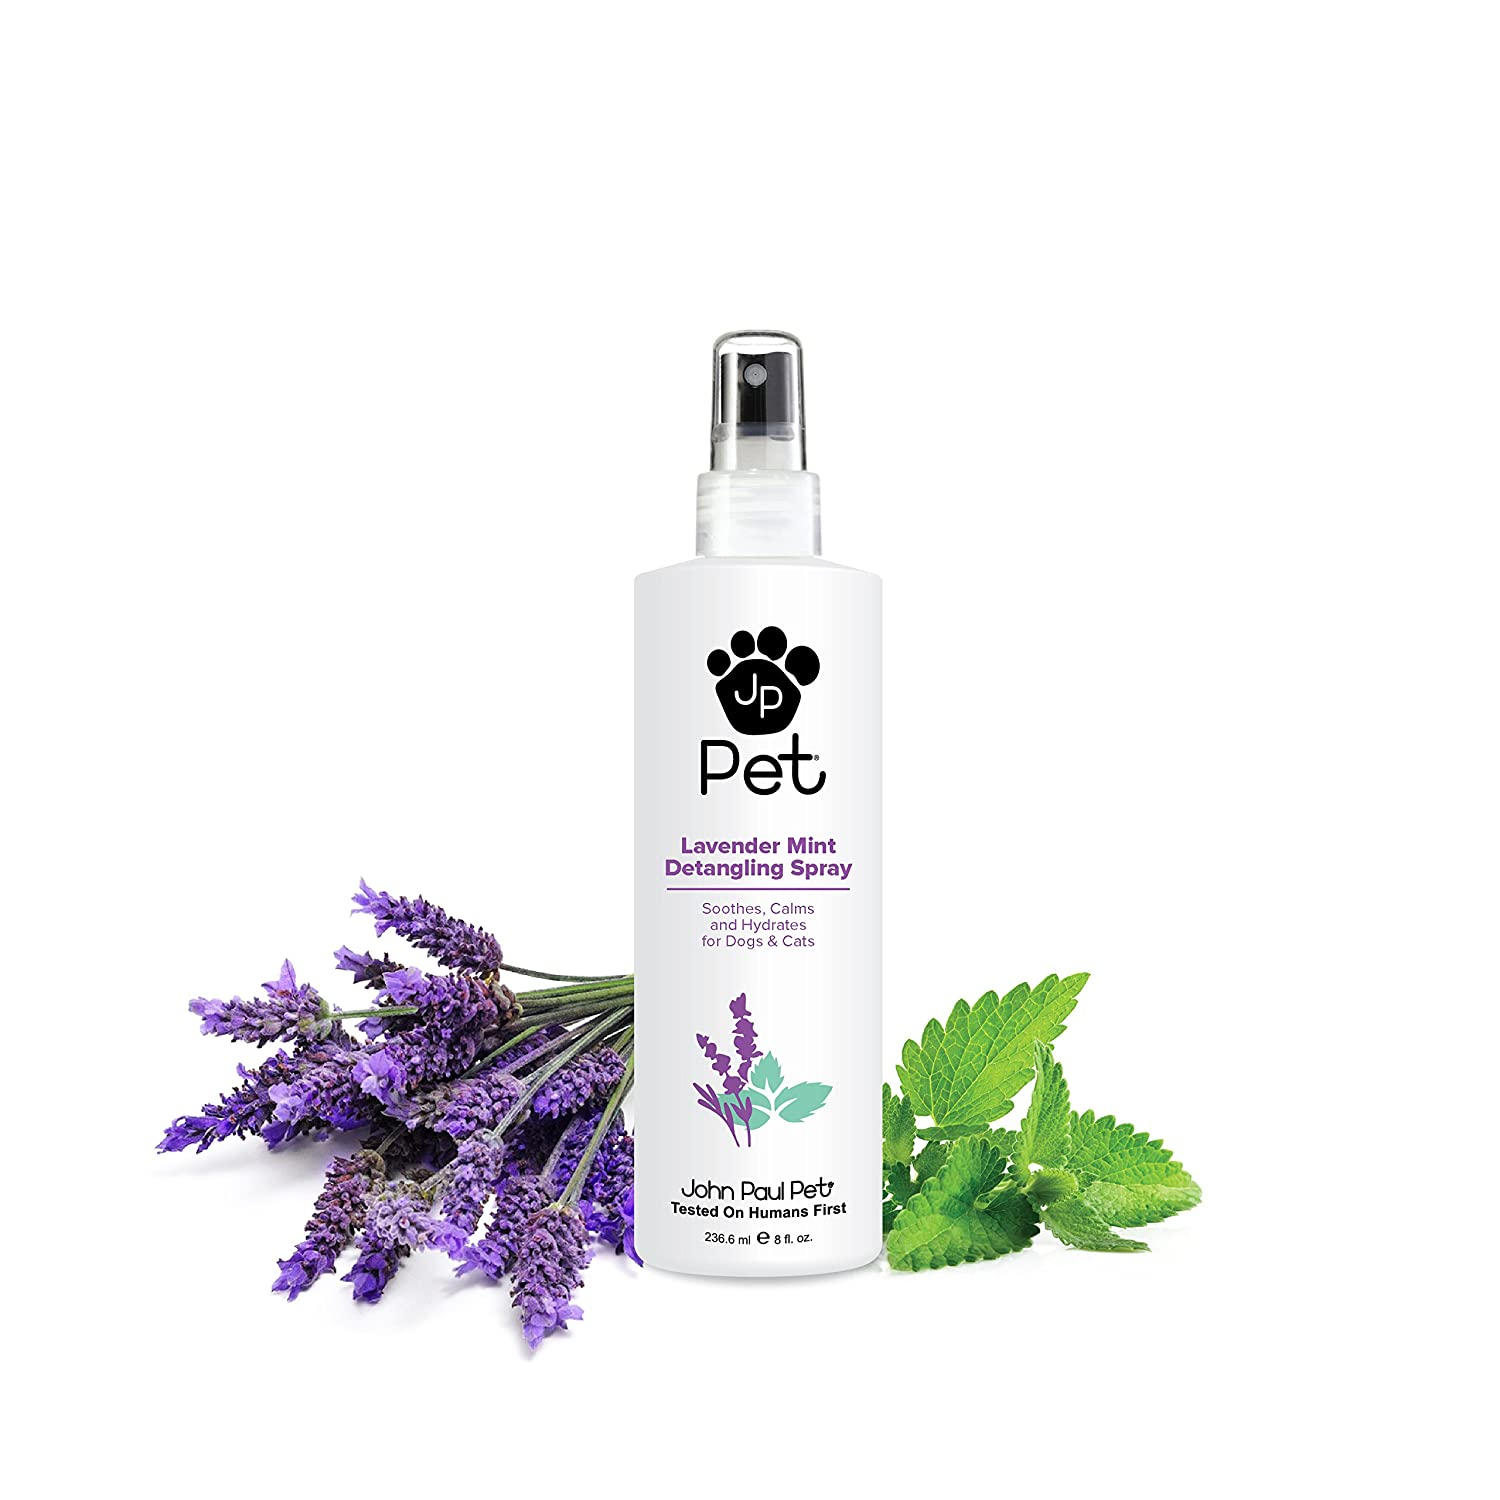 John Paul Pet Lavender Mint Detangling Spray for Dogs and Cats 236.6ml